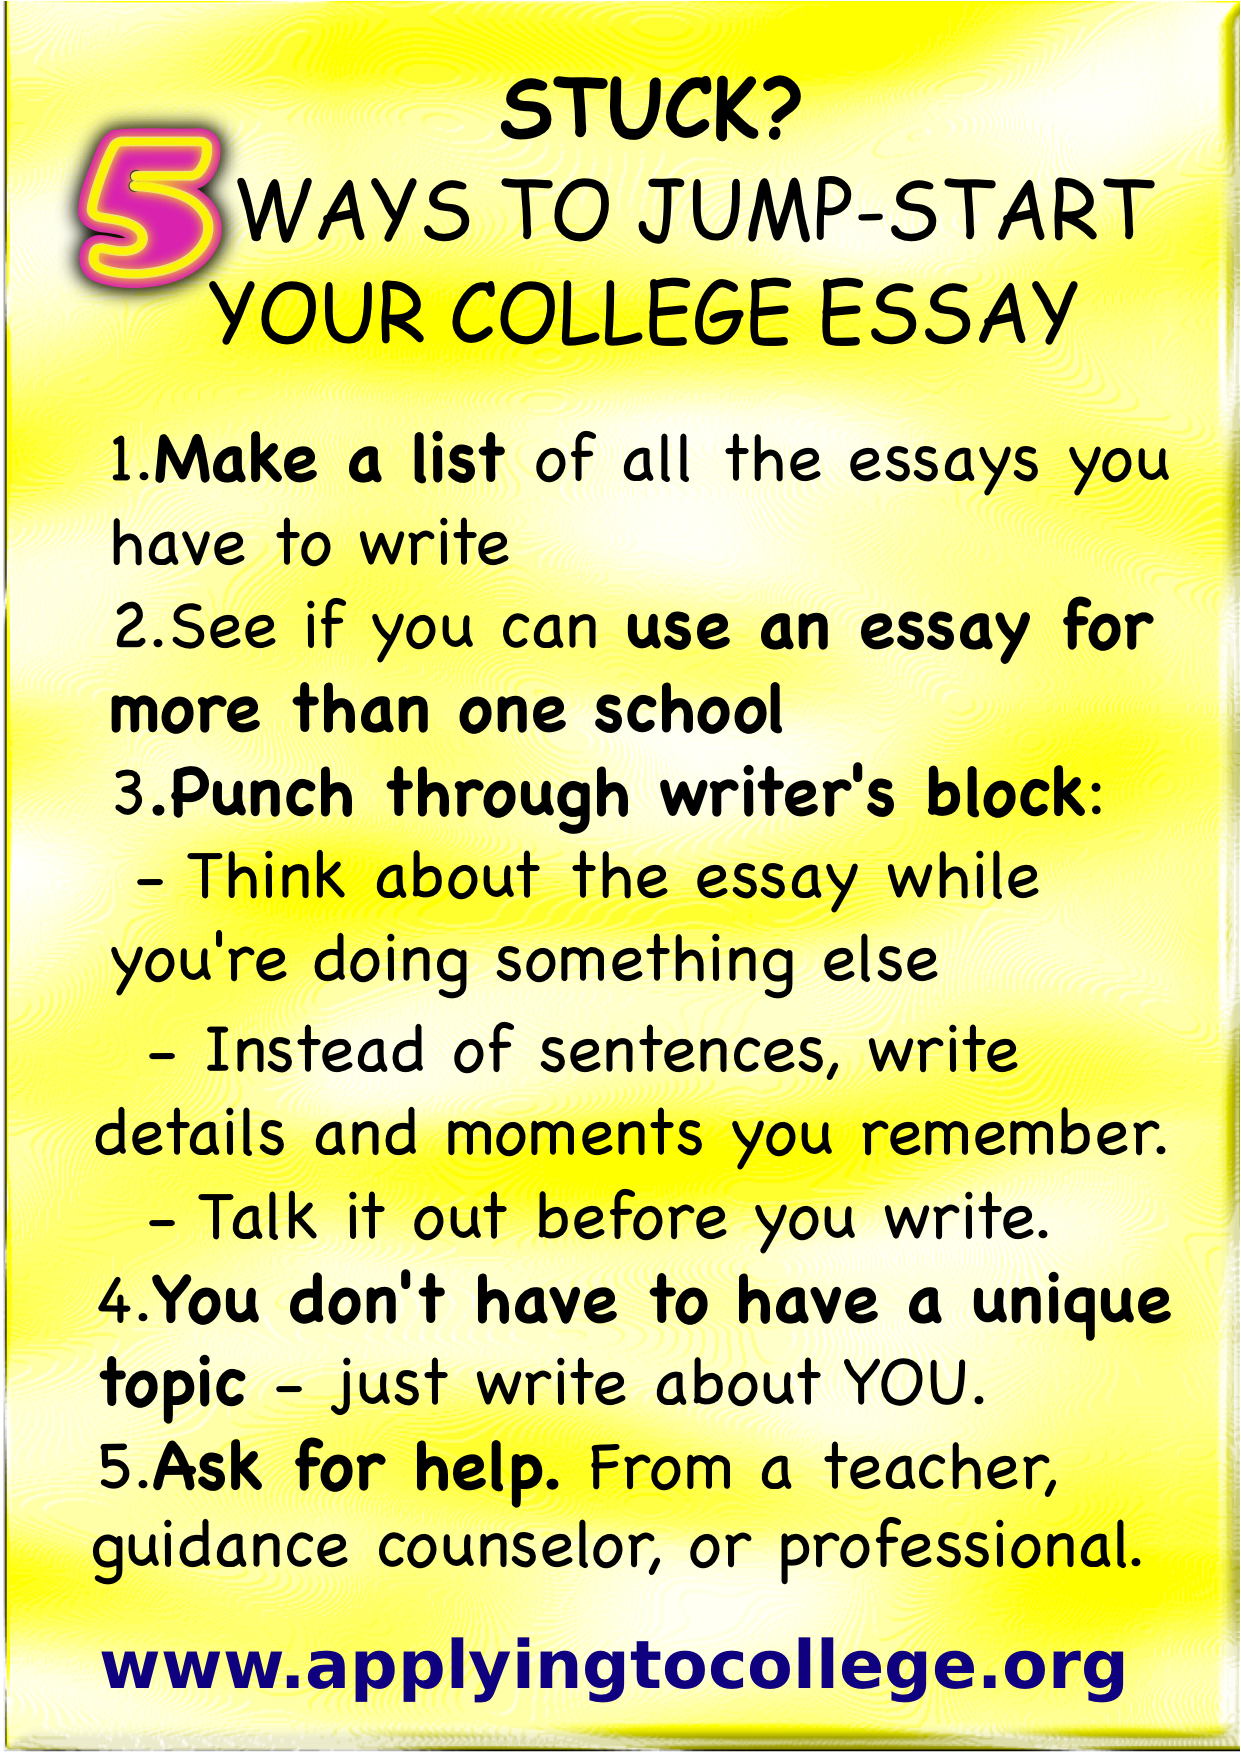 How can i make this College Essay better?